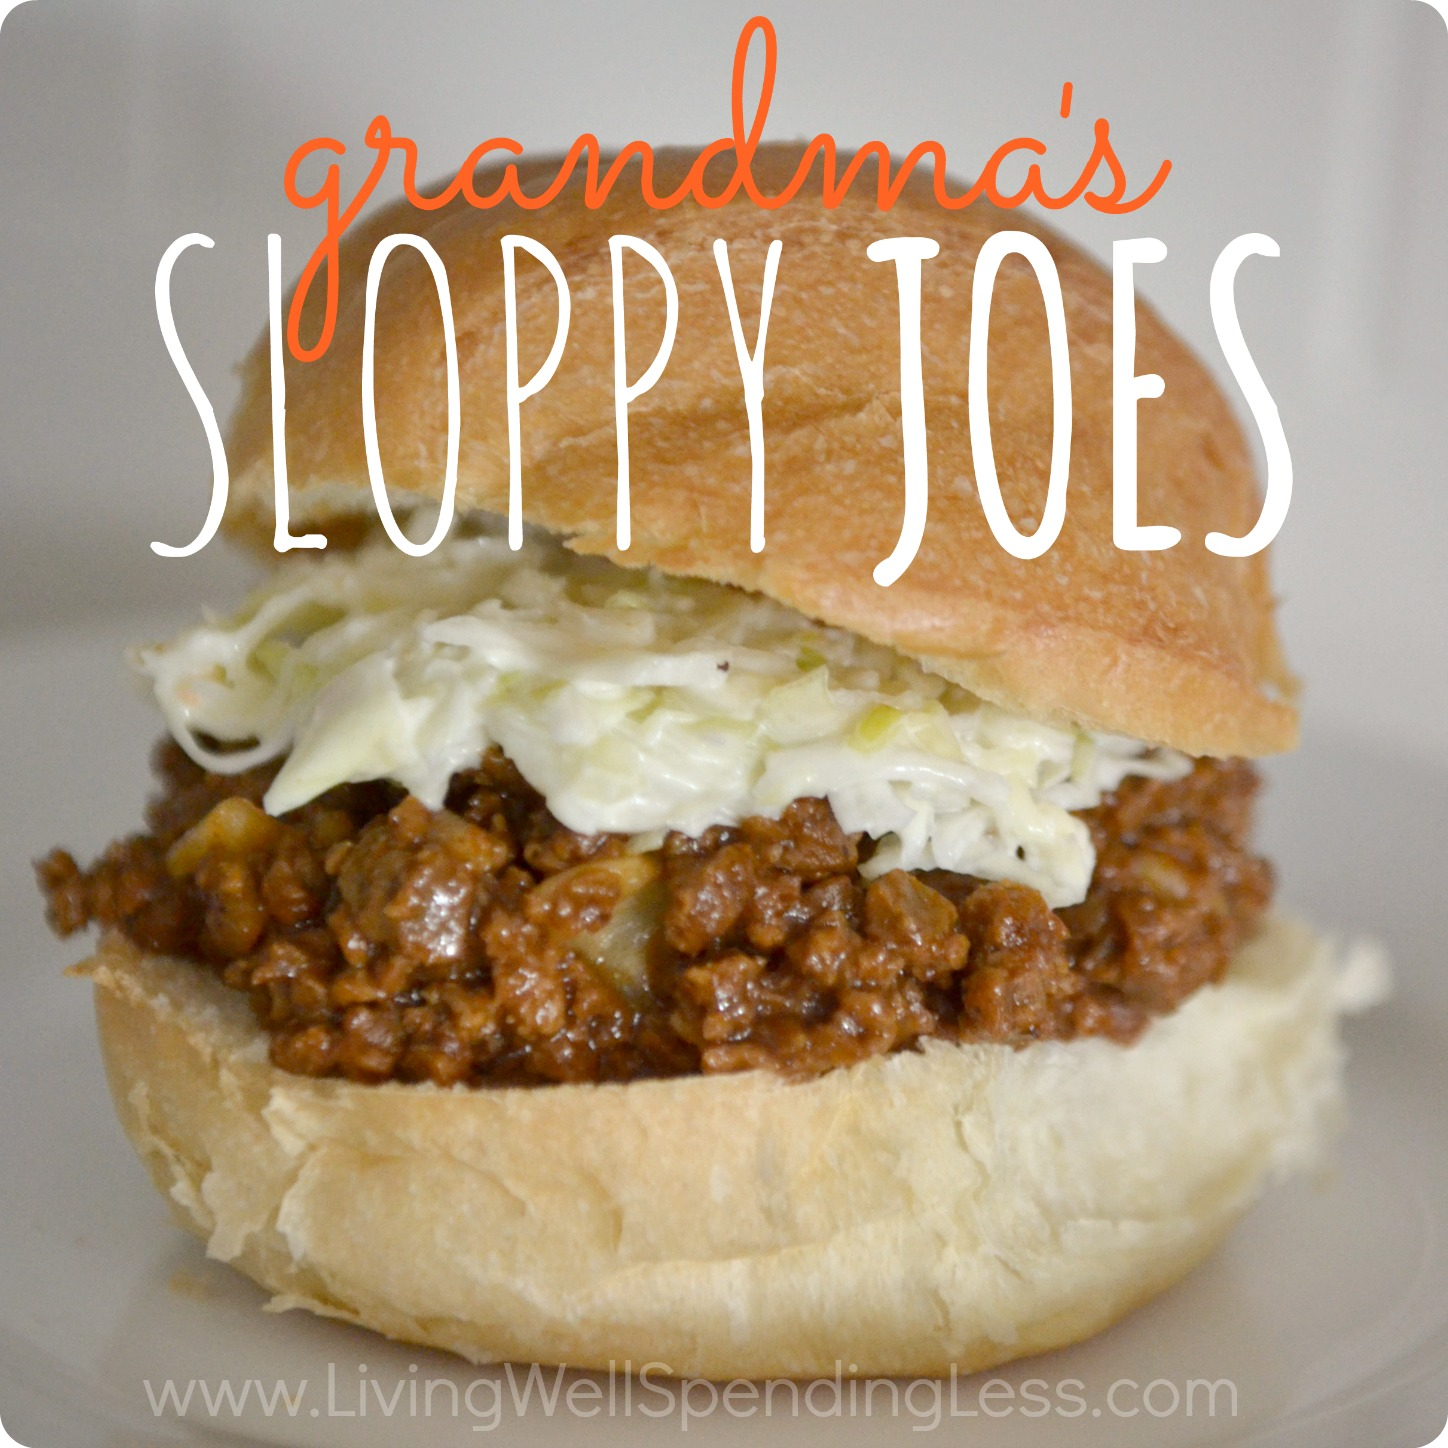 Grandma's Sloppy Joes - Living Well Spending Less®